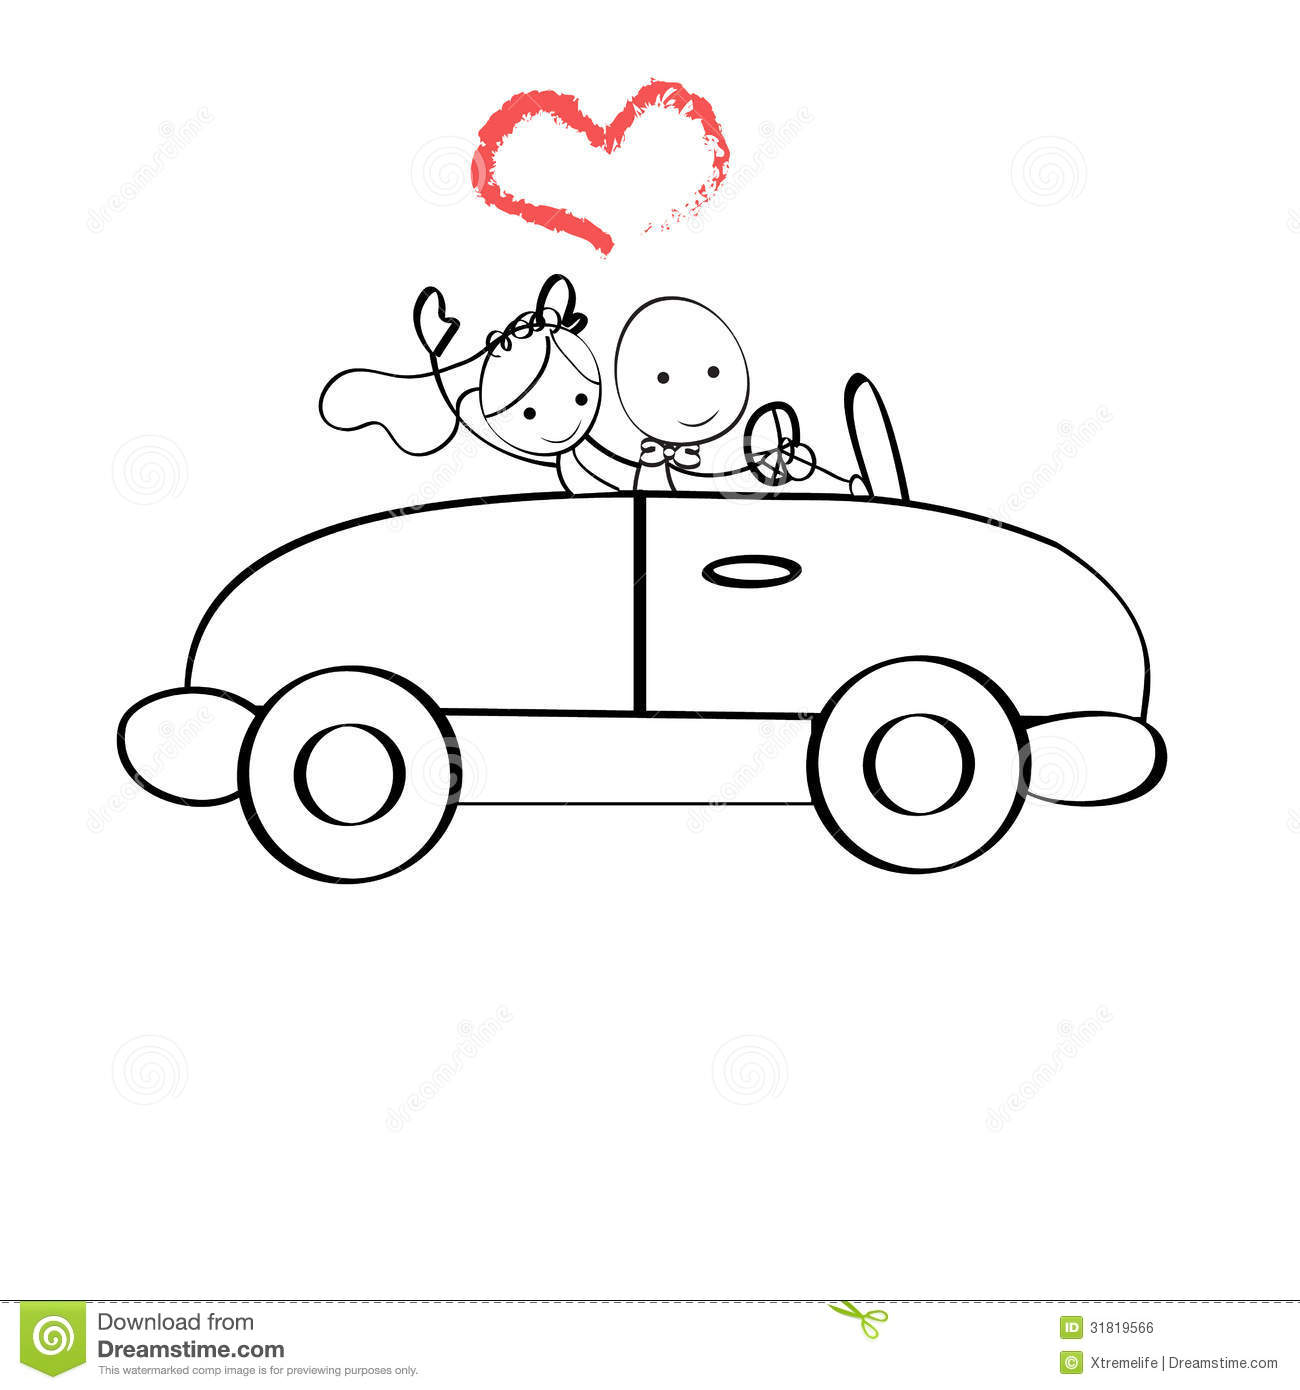 Doodle Illustration The Bride And Groom Riding In A Car